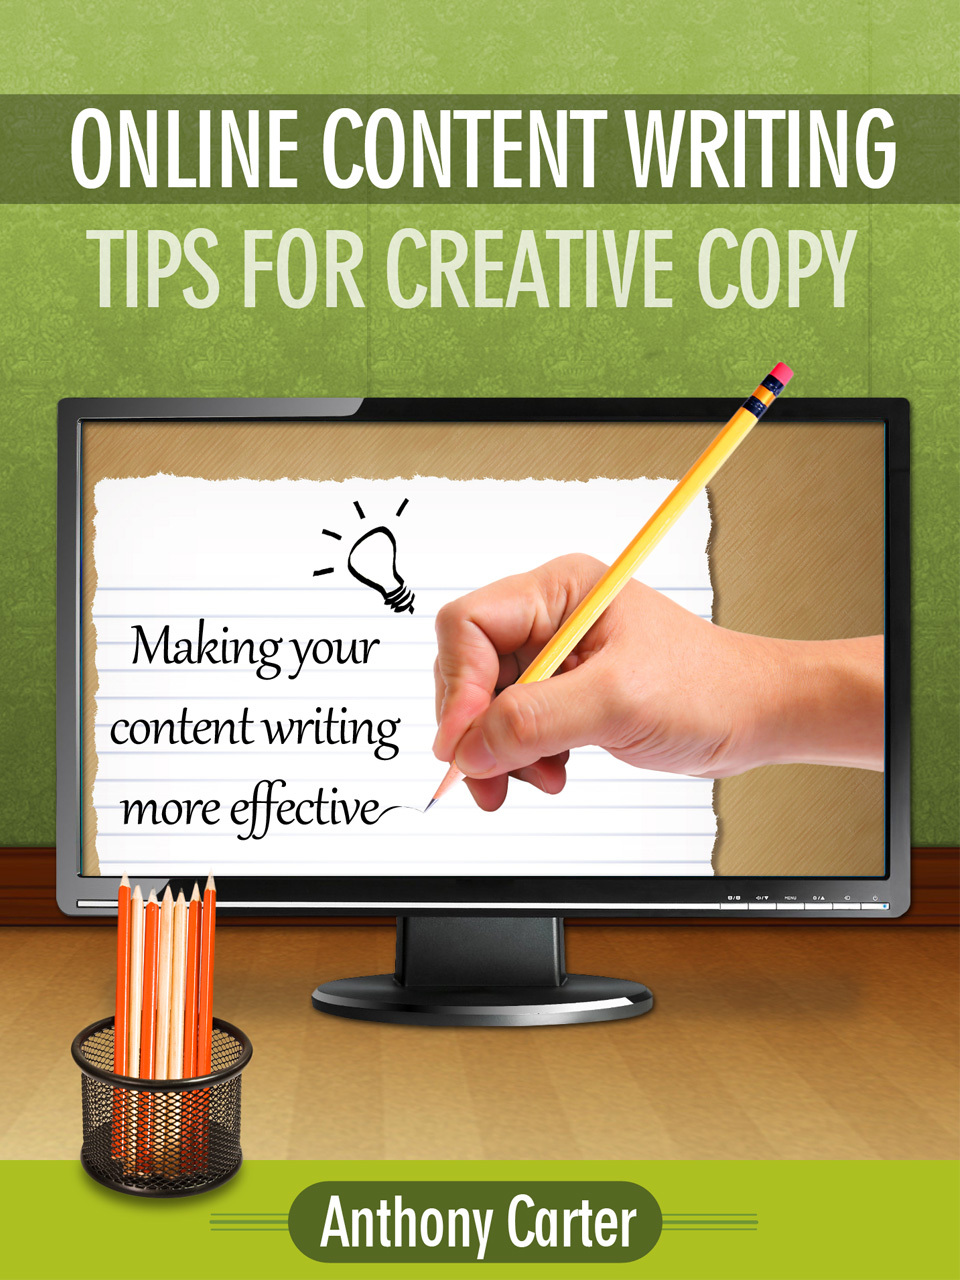 Online Content Writing: Tips for Creative Copy